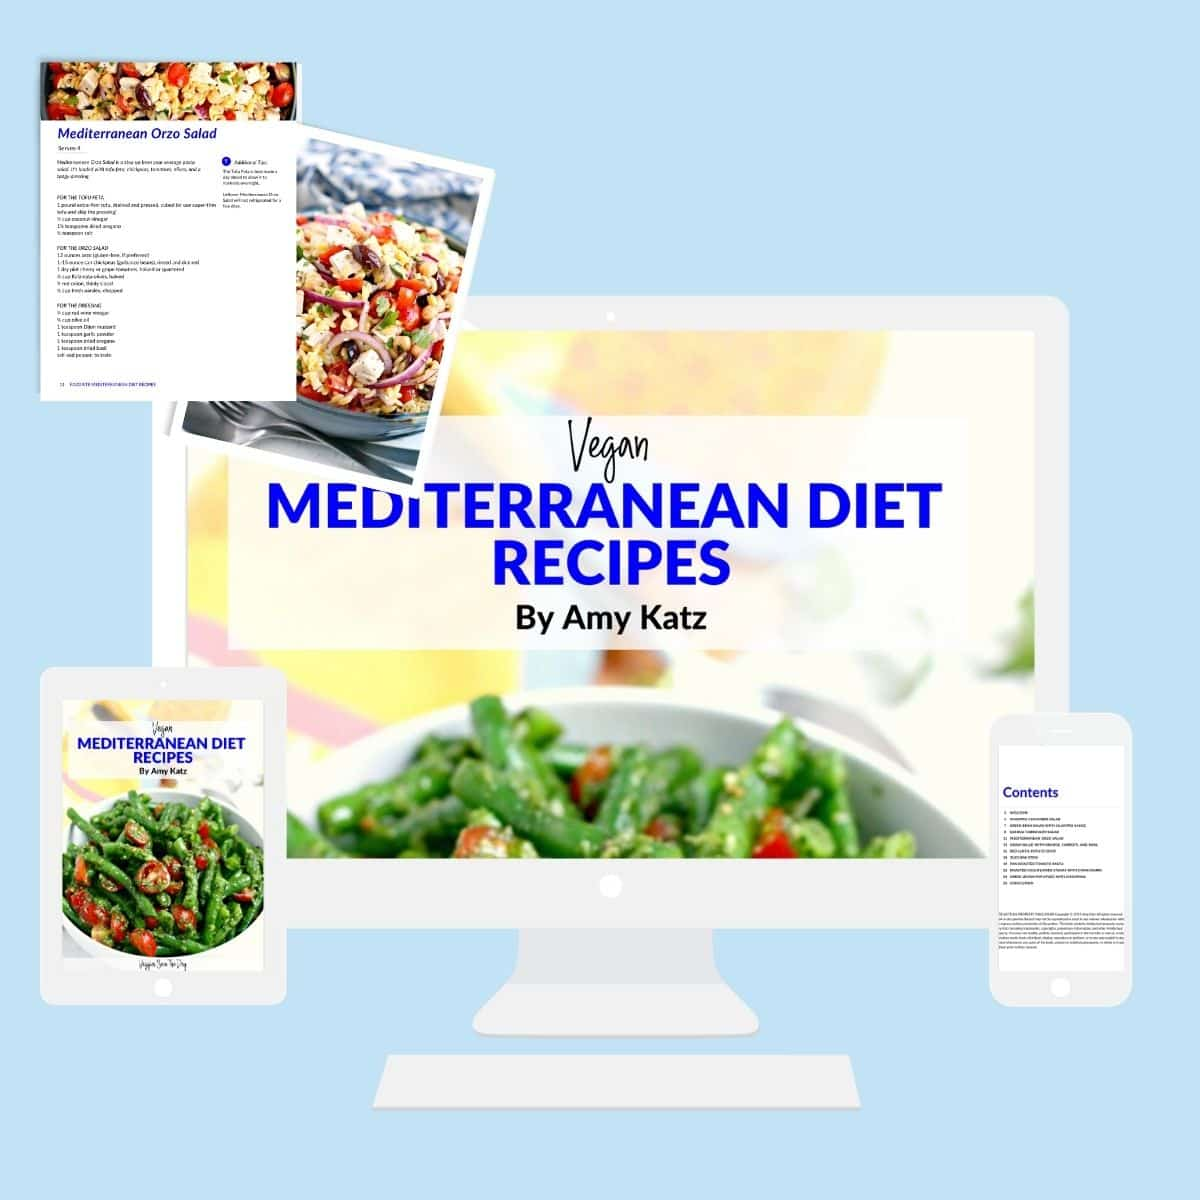 Images on computer, tablet, and smart phone from free eBook Vegan Mediterranean Diet Recipes